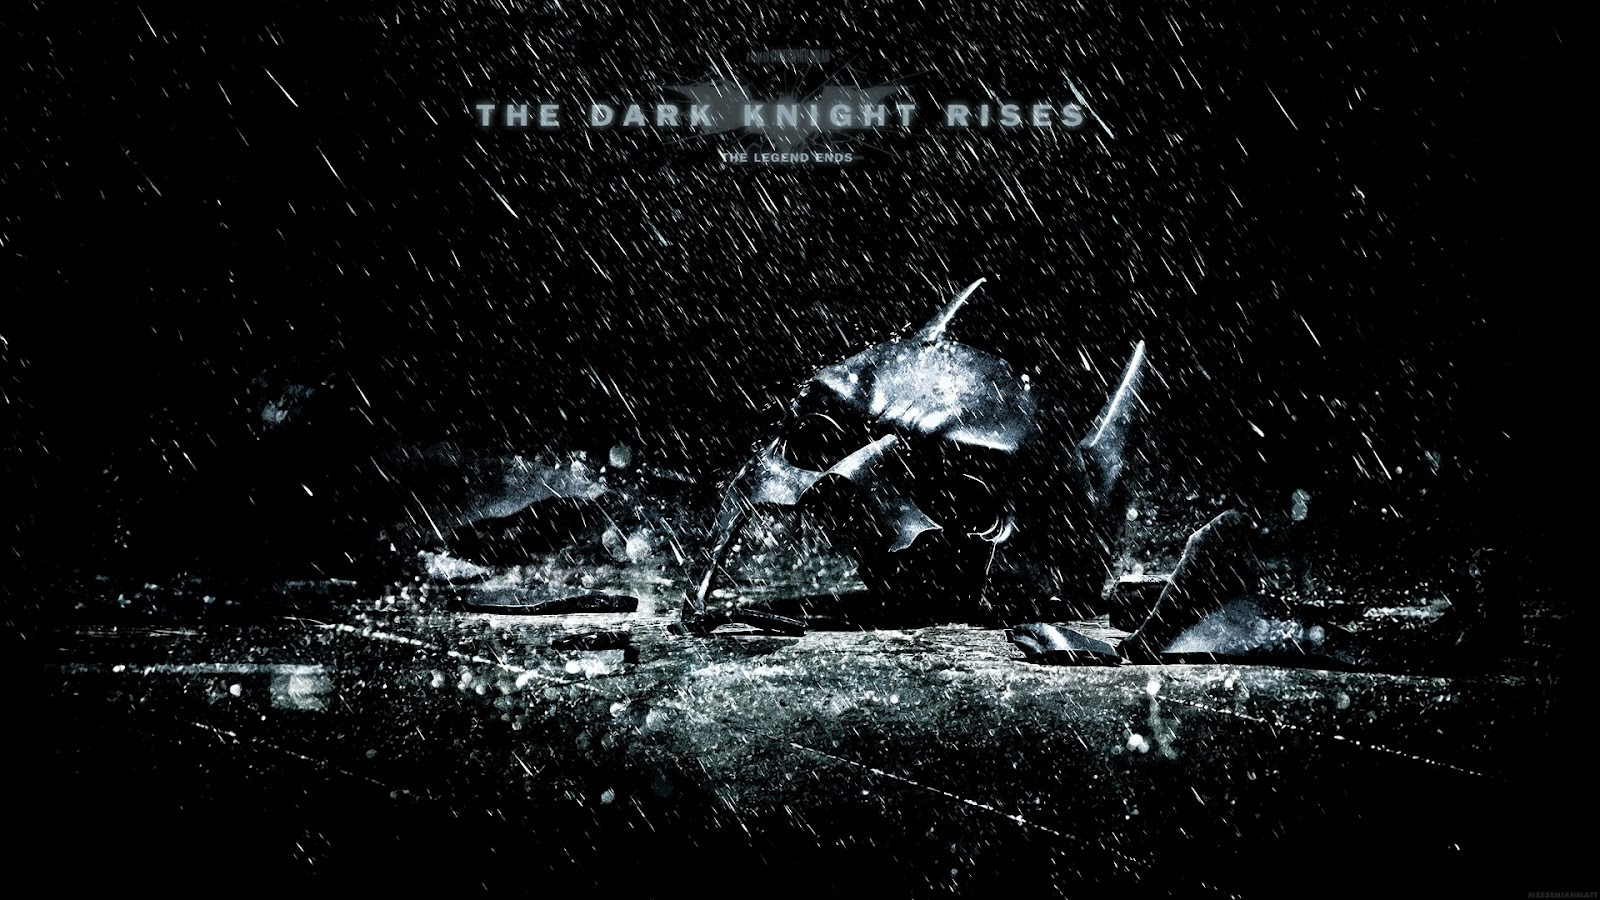 Dark Knight Rises Wallpaper 1600x900